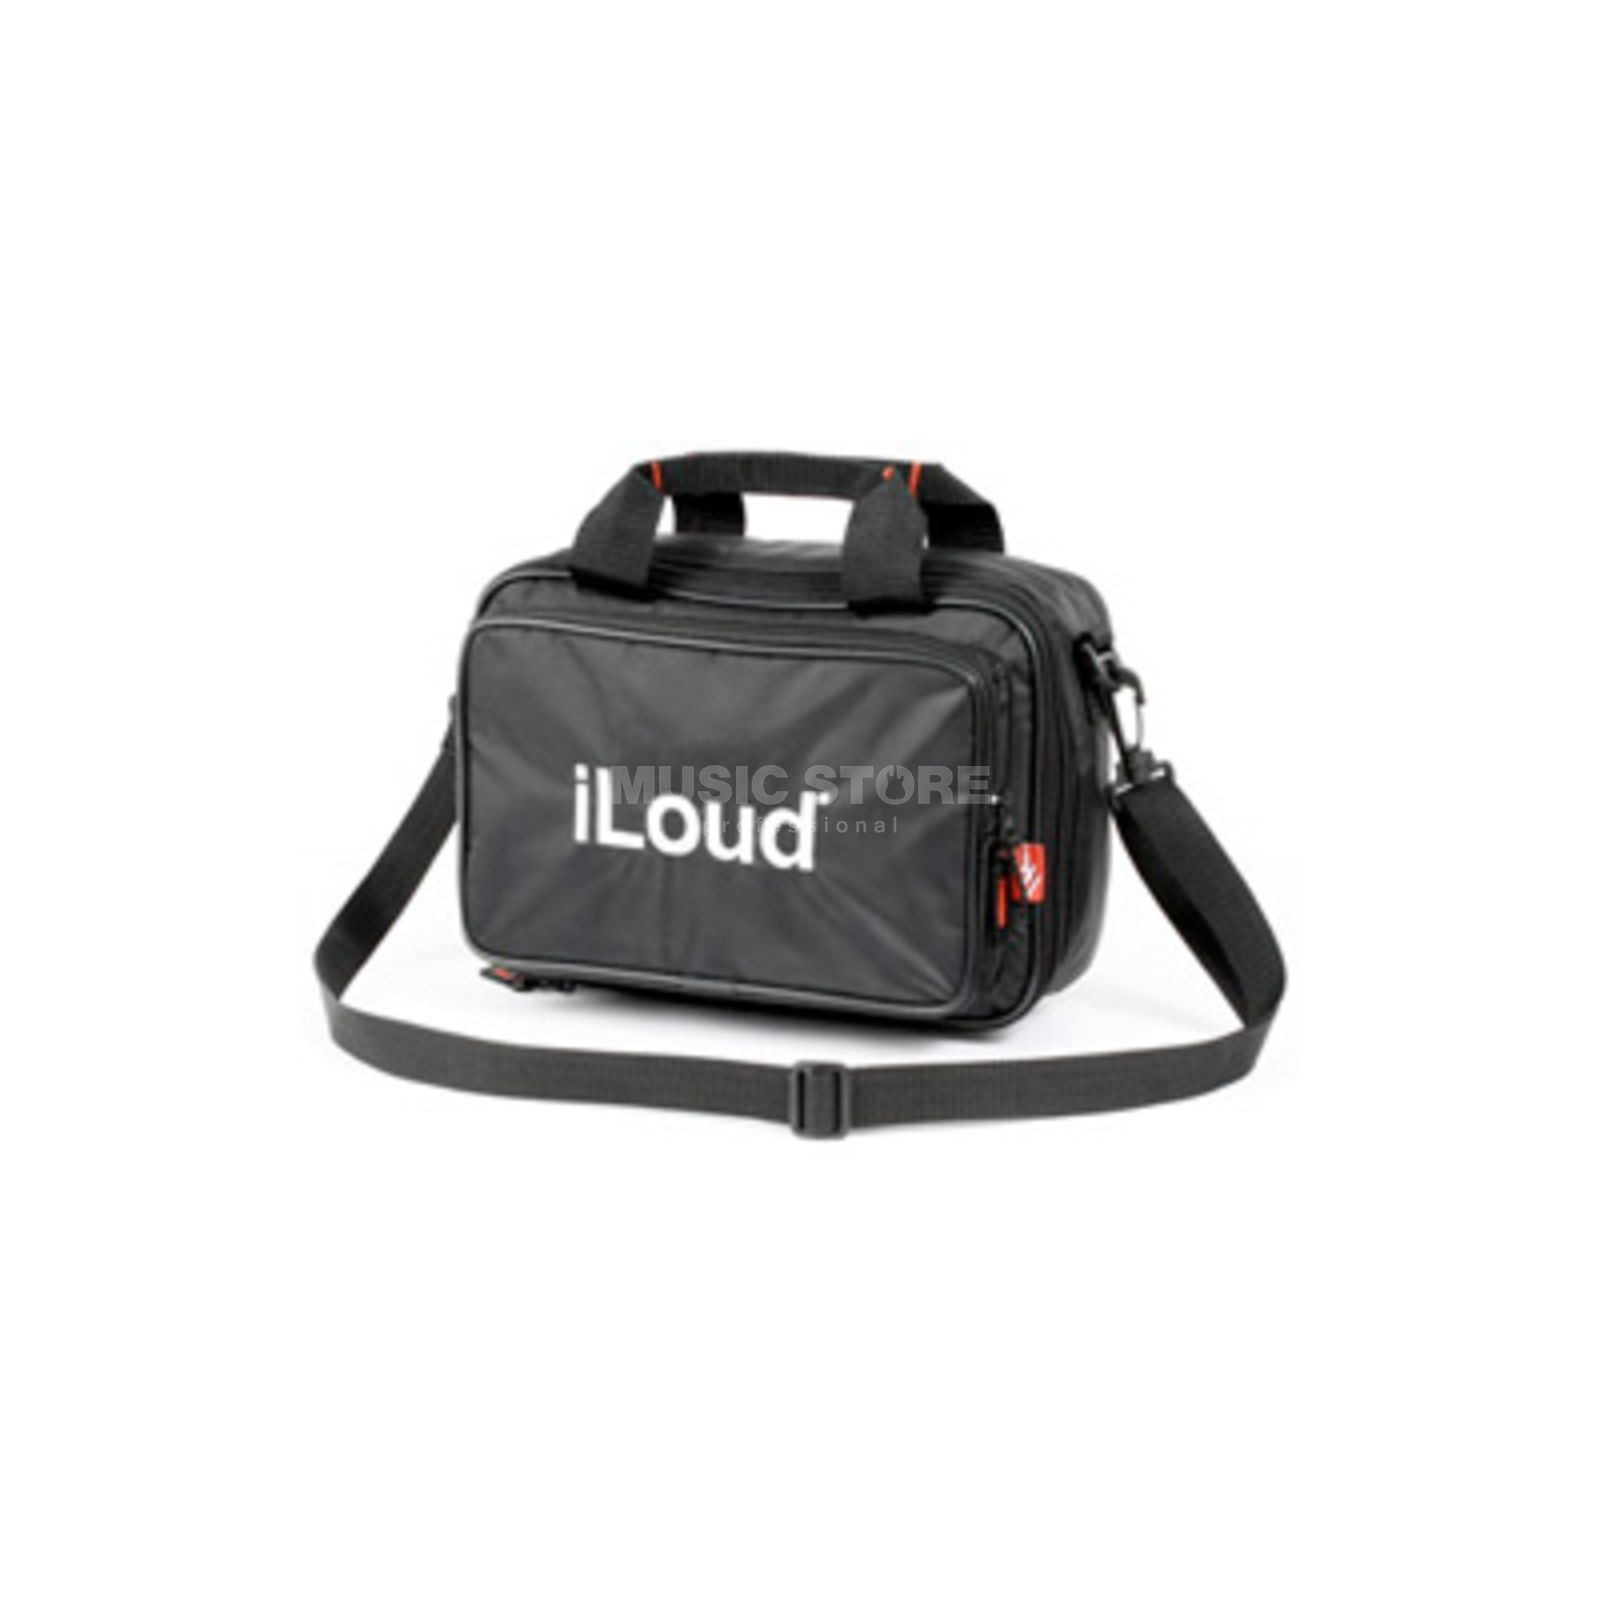 IK Multimedia iLoud Travel Bag Tasche für iLoud Produktbild